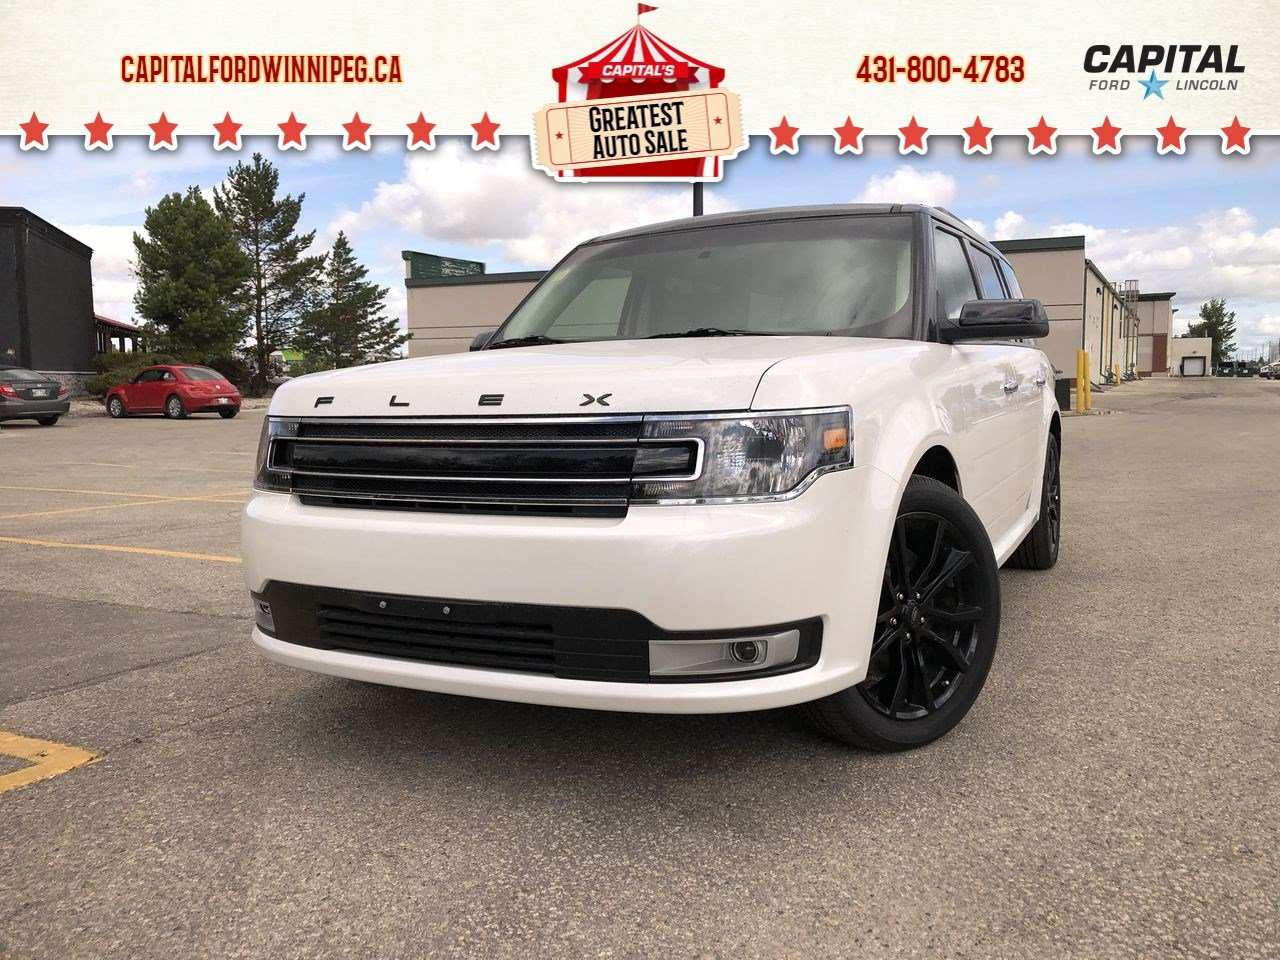 New 2019 Ford Flex SEL*Only $338 bw!*Bluetooth*AWD*Vista Roof*6 Seater*Remote Start